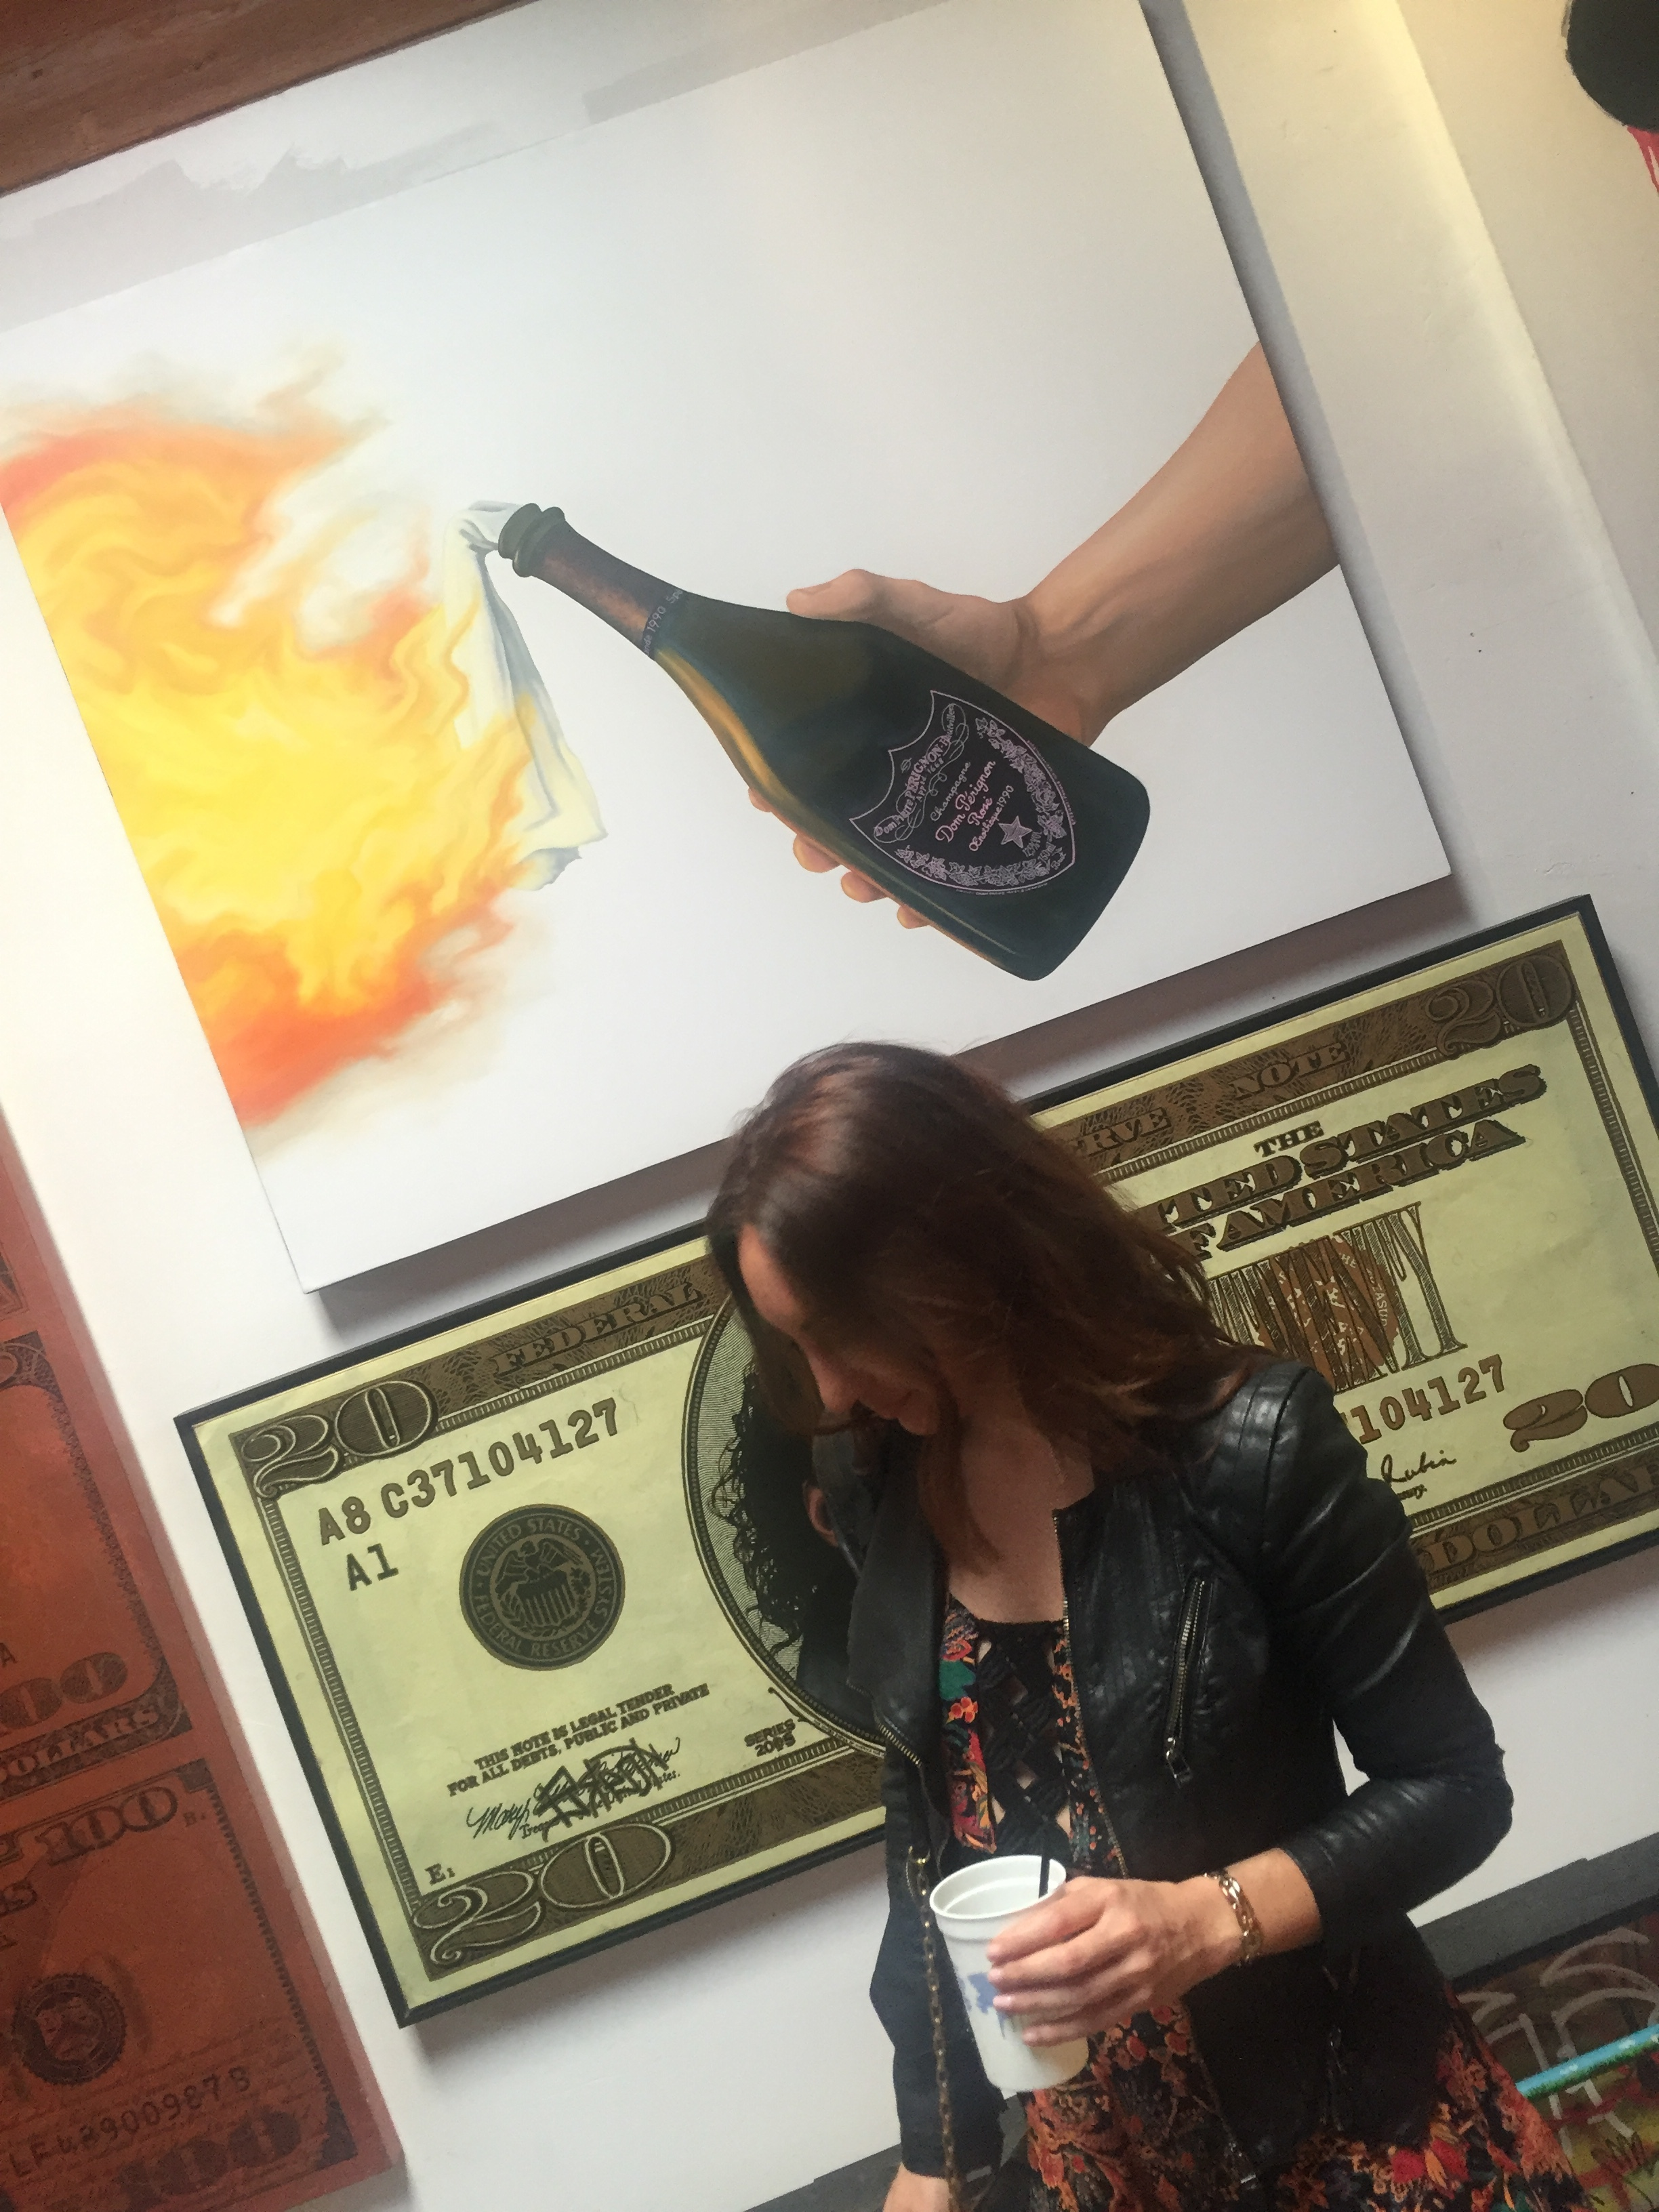 Brielle Galekovic of The Gilded Bellini at New Amsterdam Vodka It's Your Town Event